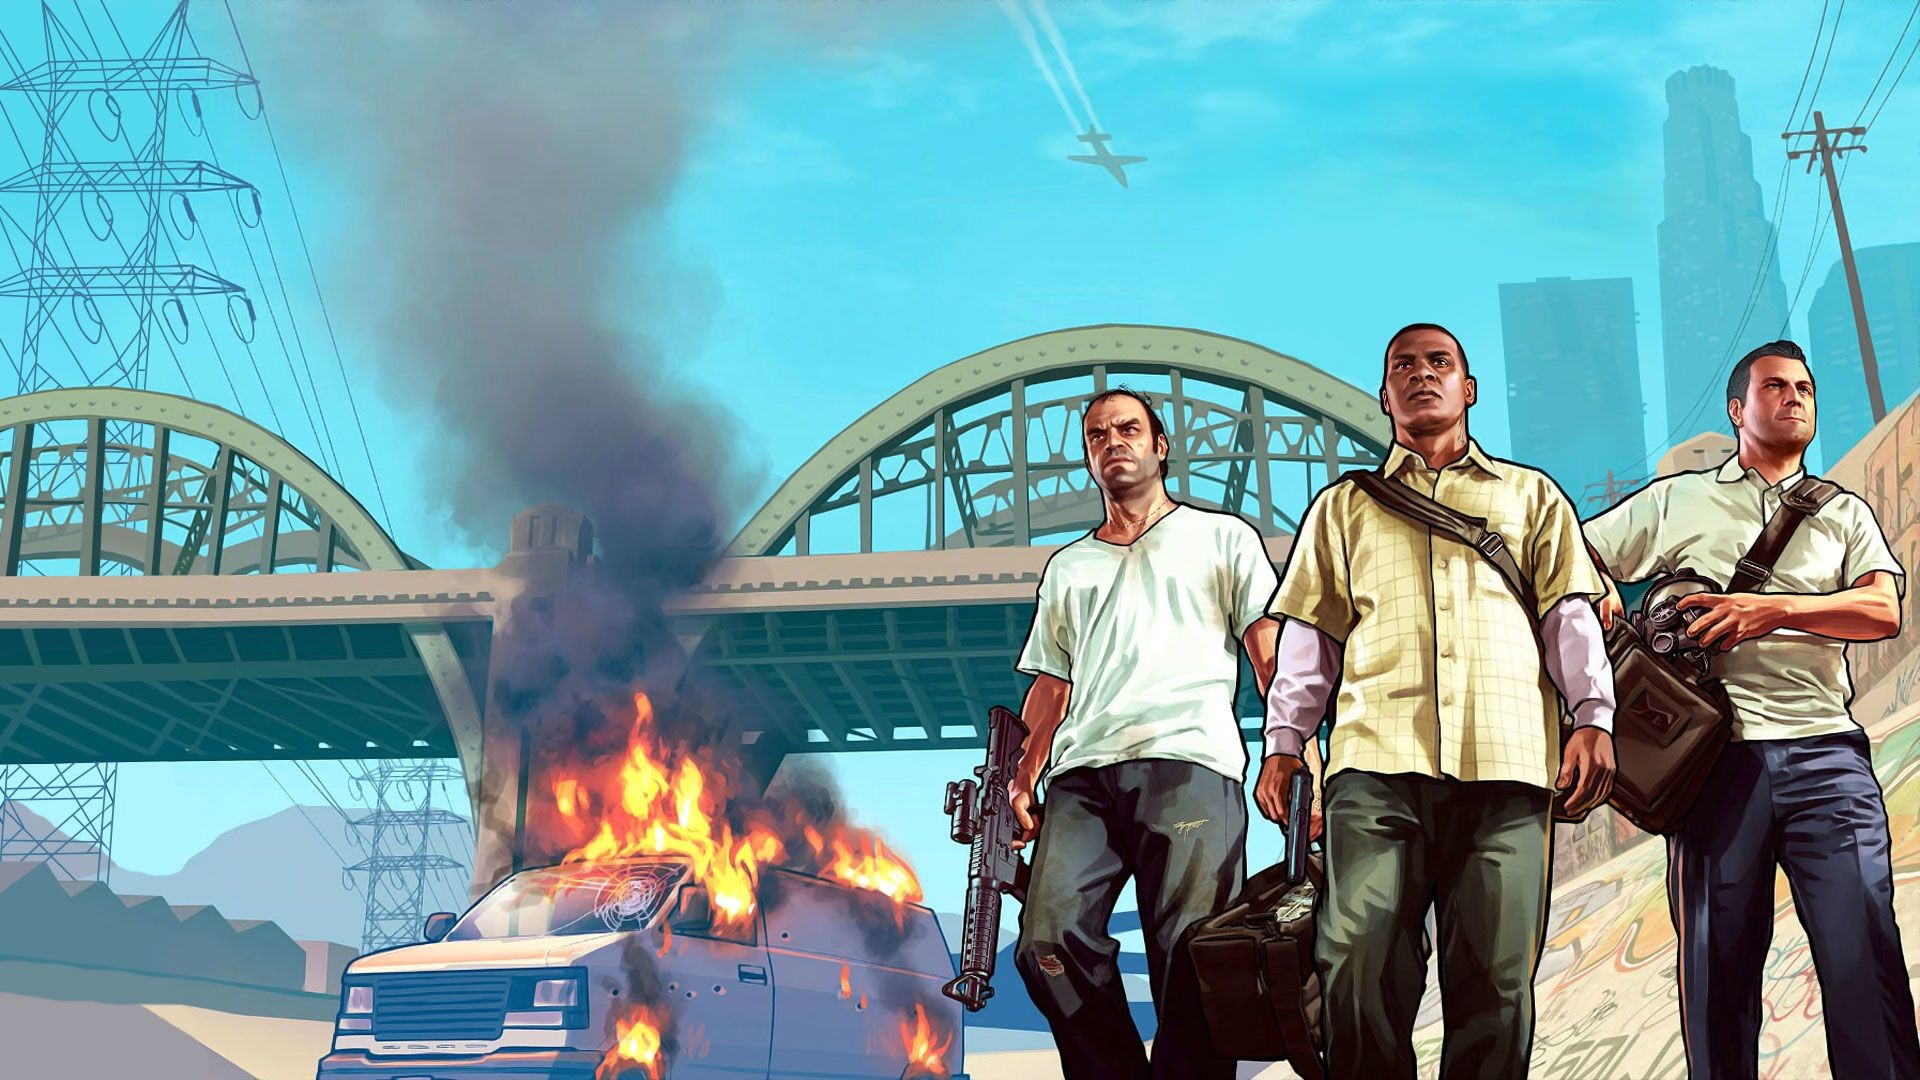 1920x1080 Grand Theft Auto 5 Wallpapers High Quality